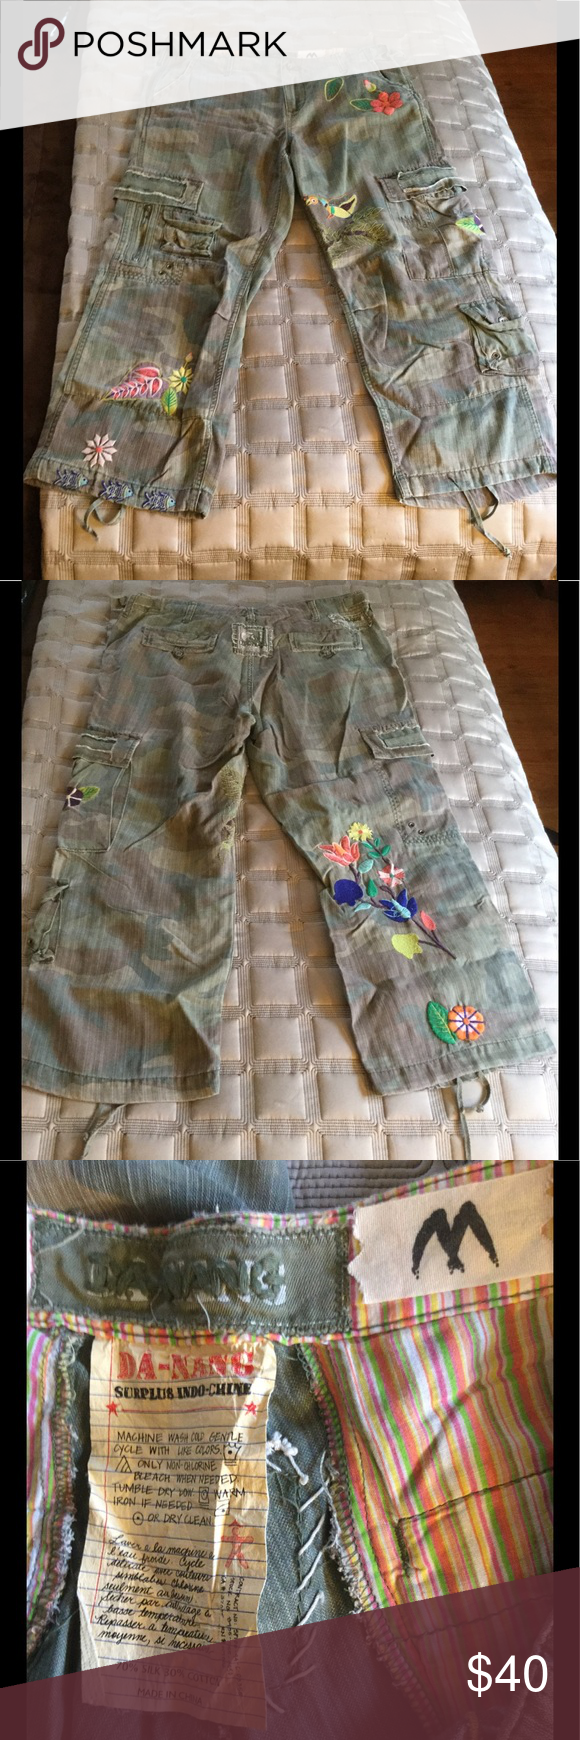 Danang Camo crop cargo w floral embroidery Med EUC Camo with floral 🌸 and bird 🦅 and fish 🐠 embroidery. Cropped length. Cargo style with lots of pockets and details and ties at hem. Super soft silk and cotton fabric. Super cute comfy capris. Excellent condition. Inseam 25 inches. Waist 17 inches across. Danang Pants Ankle & Cropped